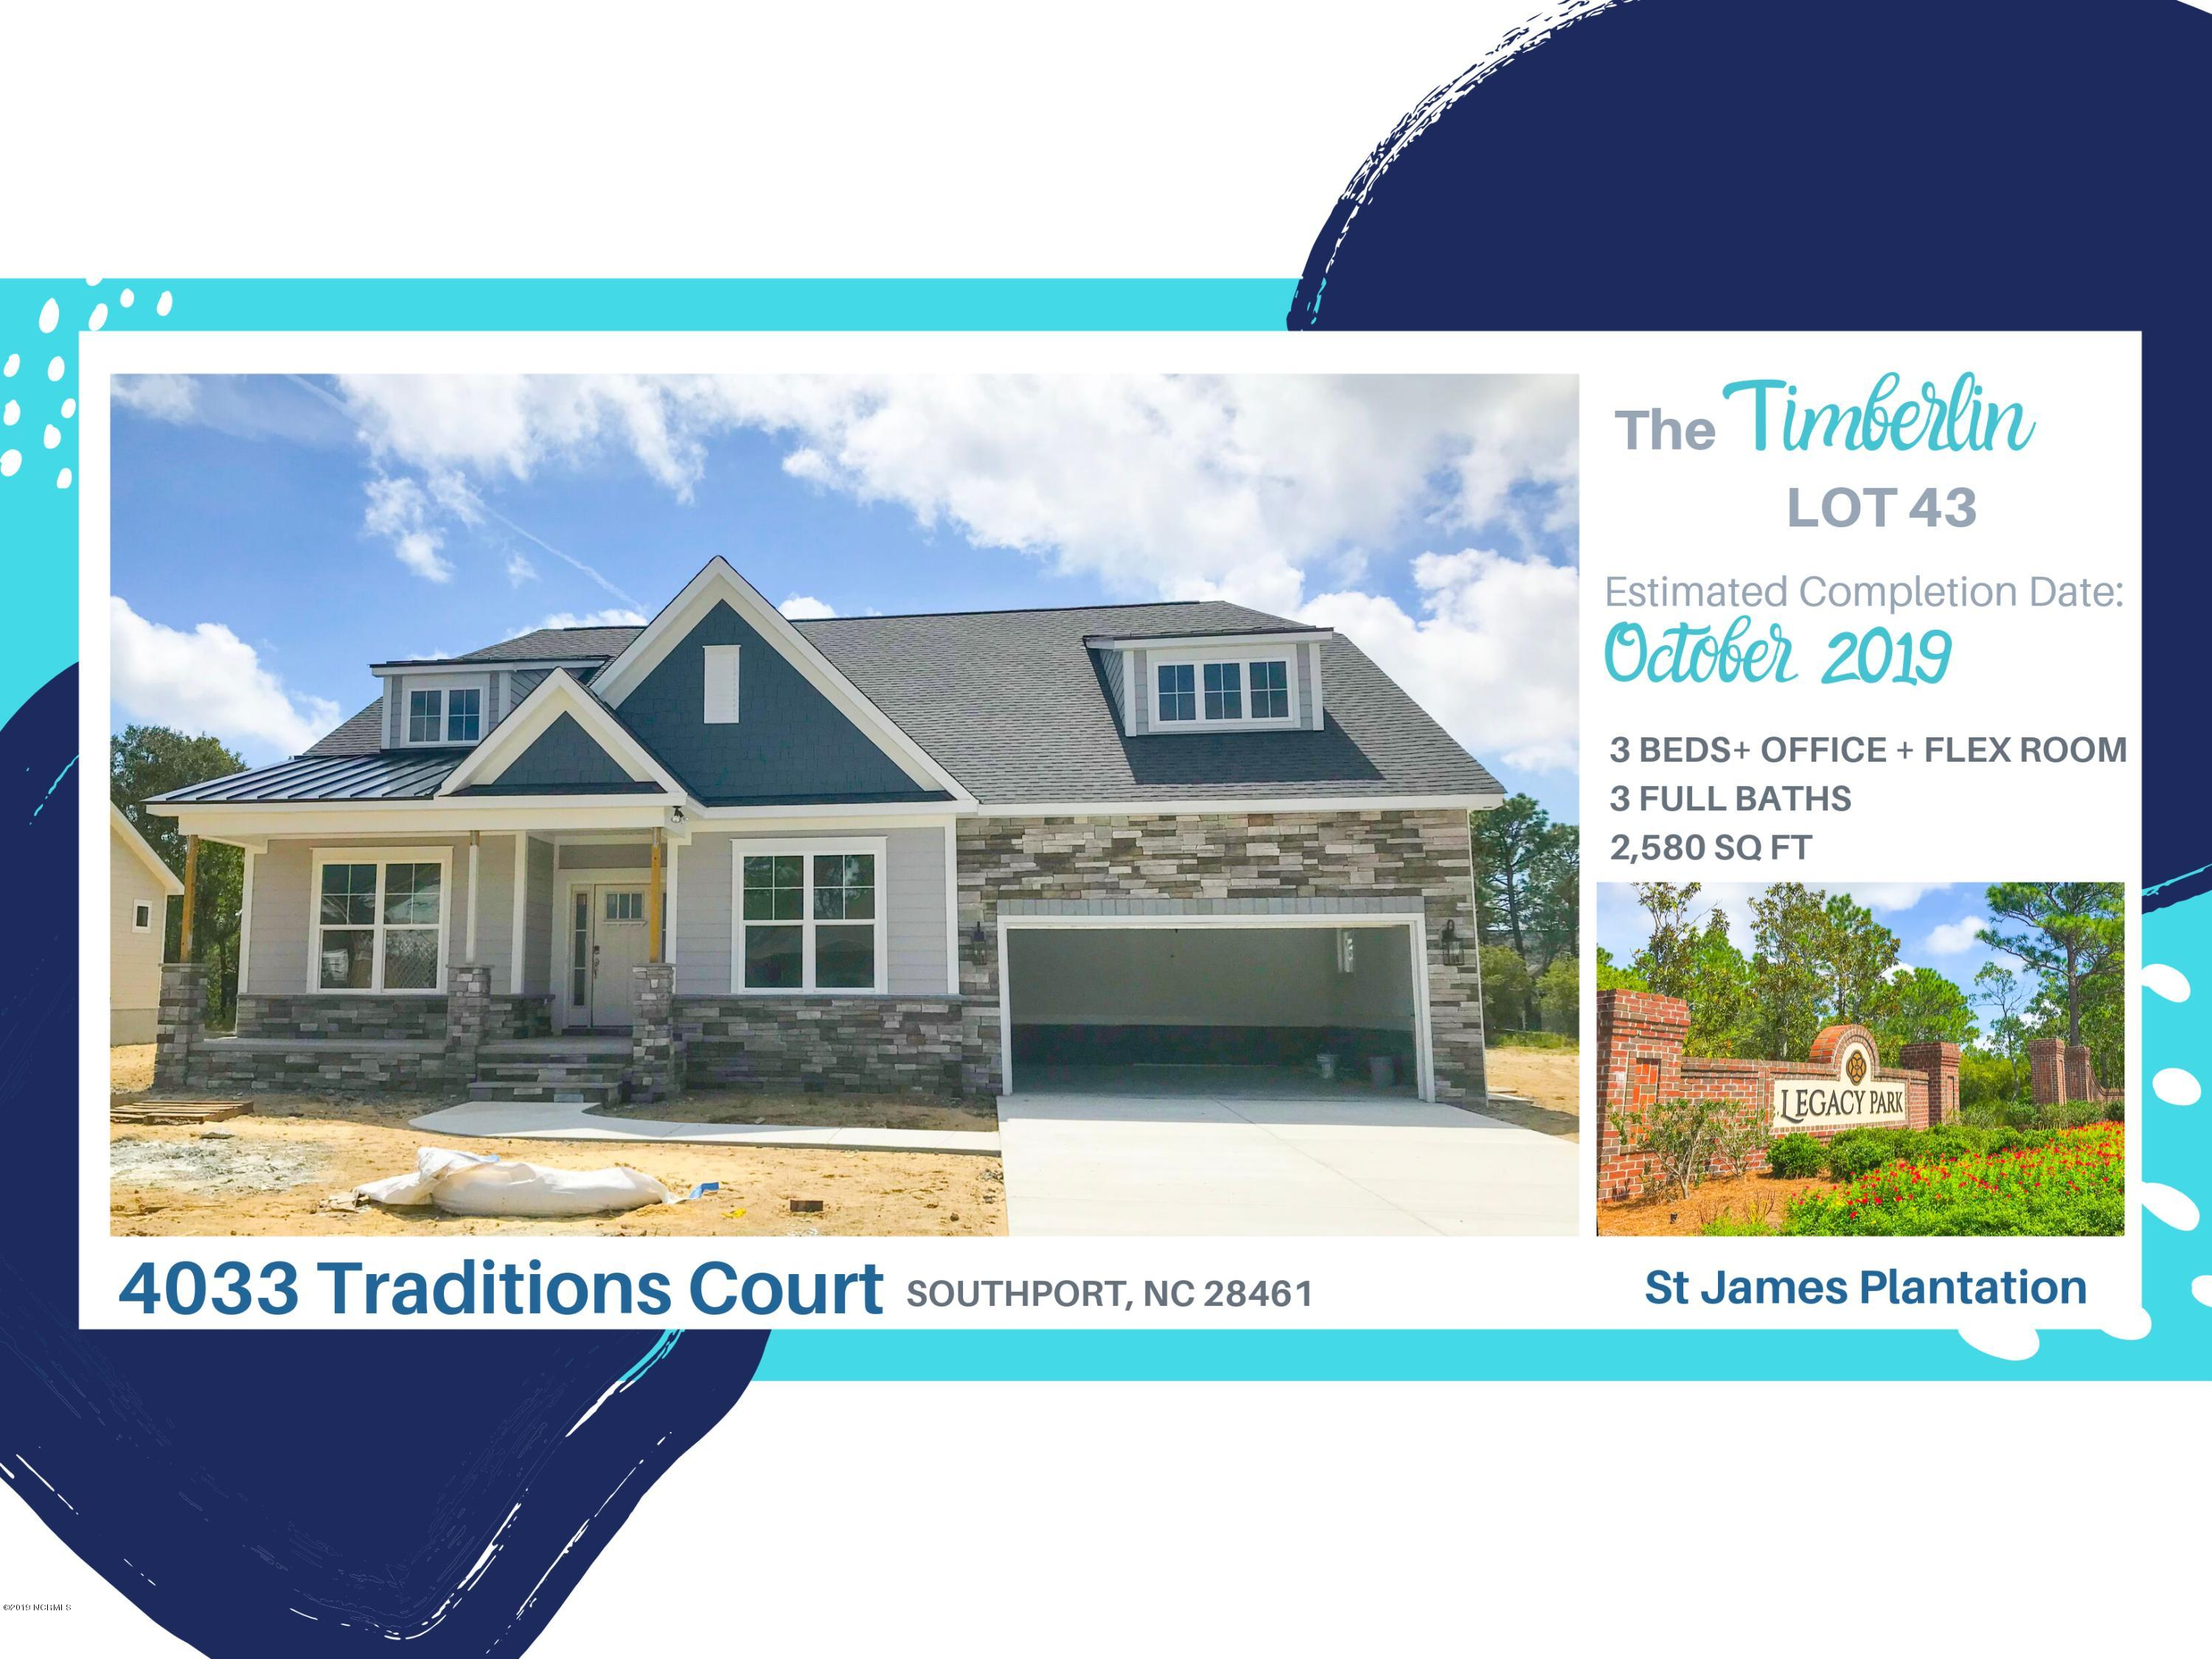 4033 Traditions Court Southport, NC 28461